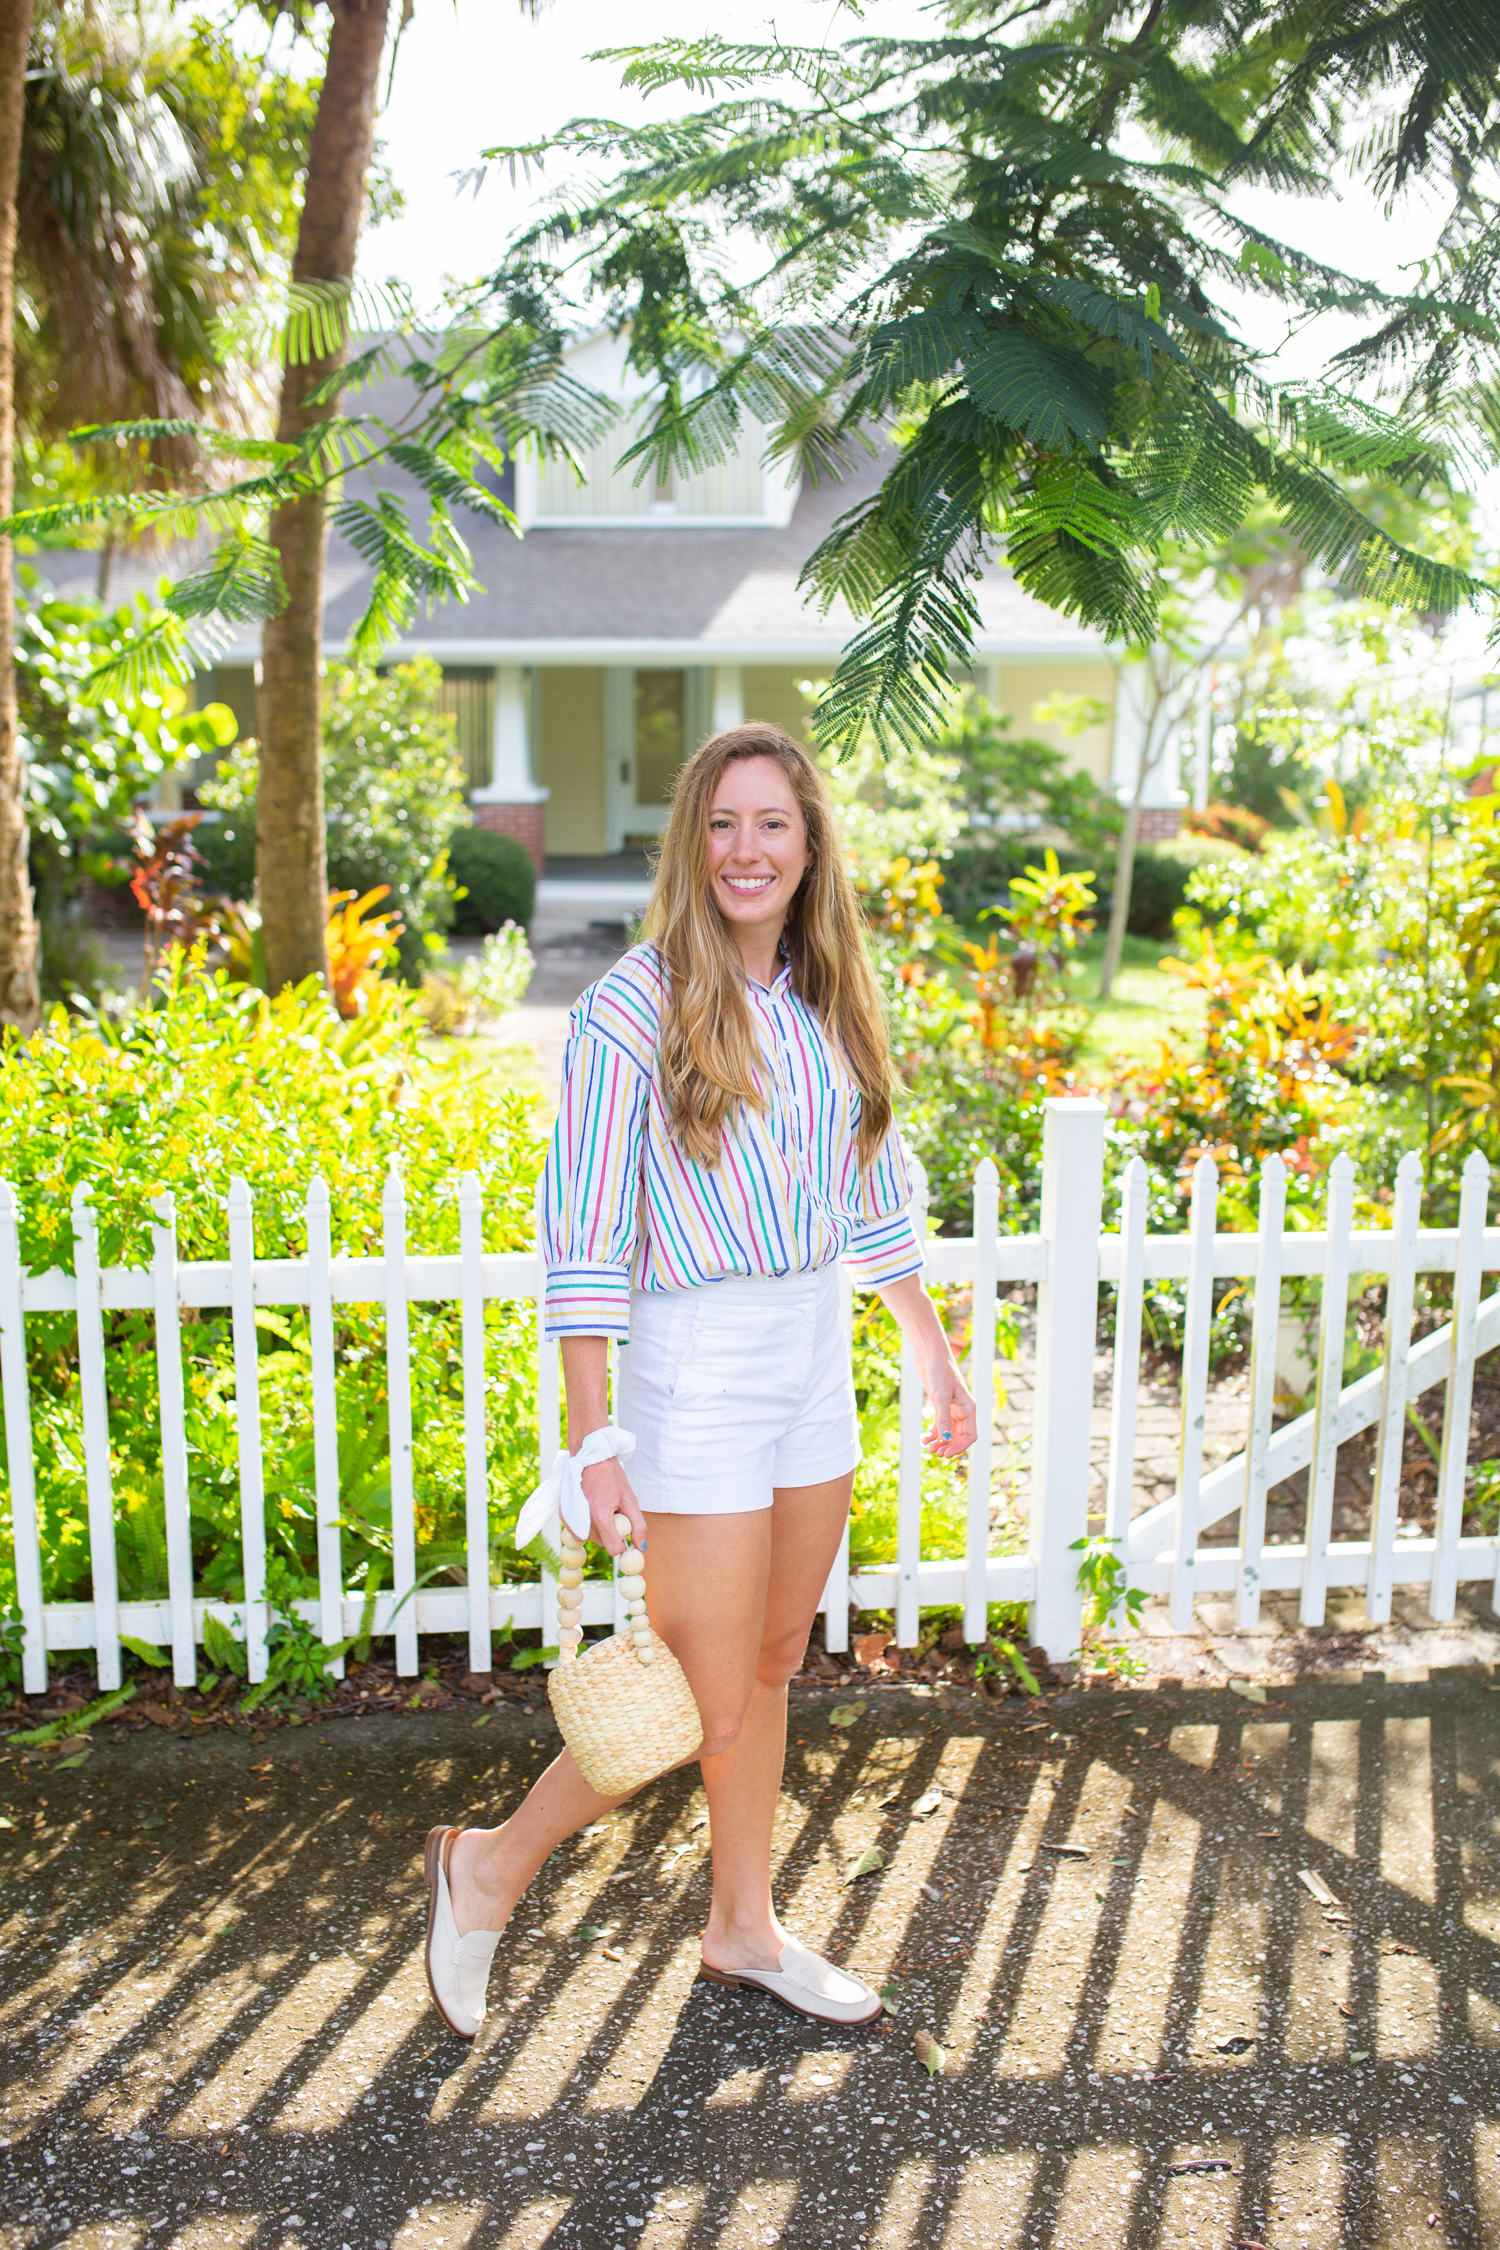 Casual Striped Button Down Top / Long Sleeve Top / Tuckernuck Top / Casual Fall Outfit / Fall Transition Outfit / White Shorts / Straw Bag - Sunshine Style, A Preppy Fashion and Coastal Lifestyle Blog